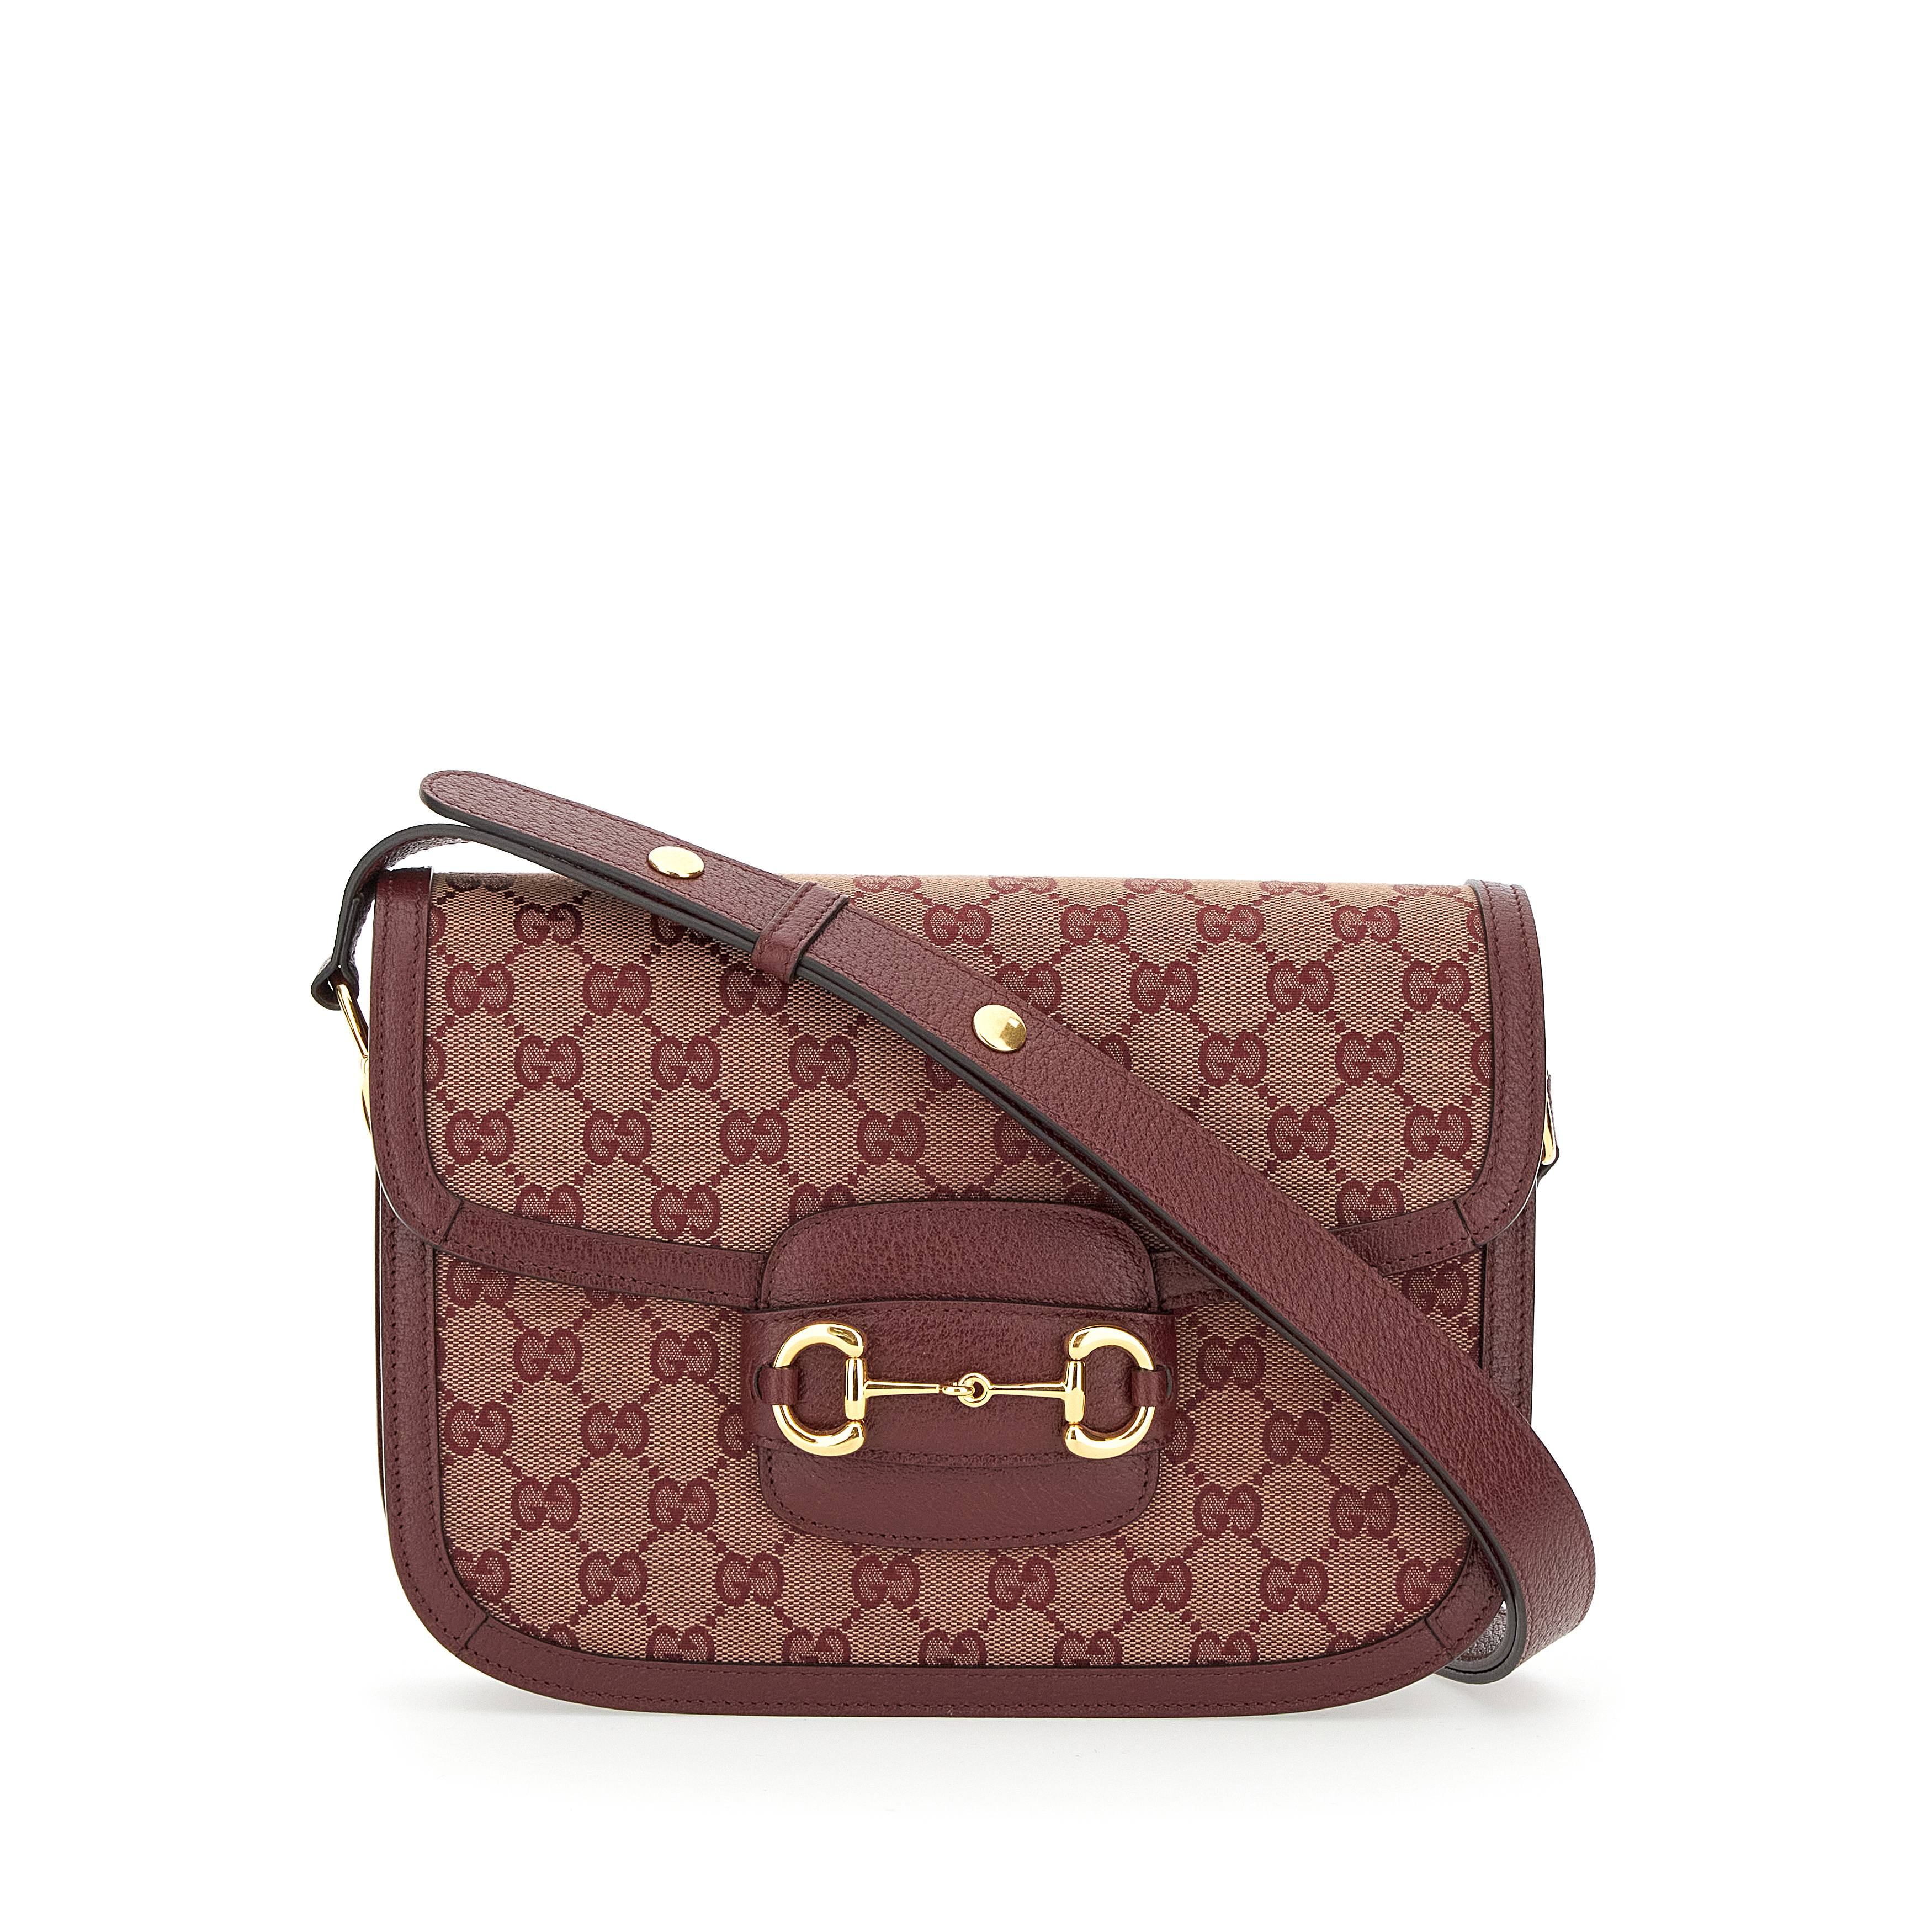 Aria Collection from Gucci